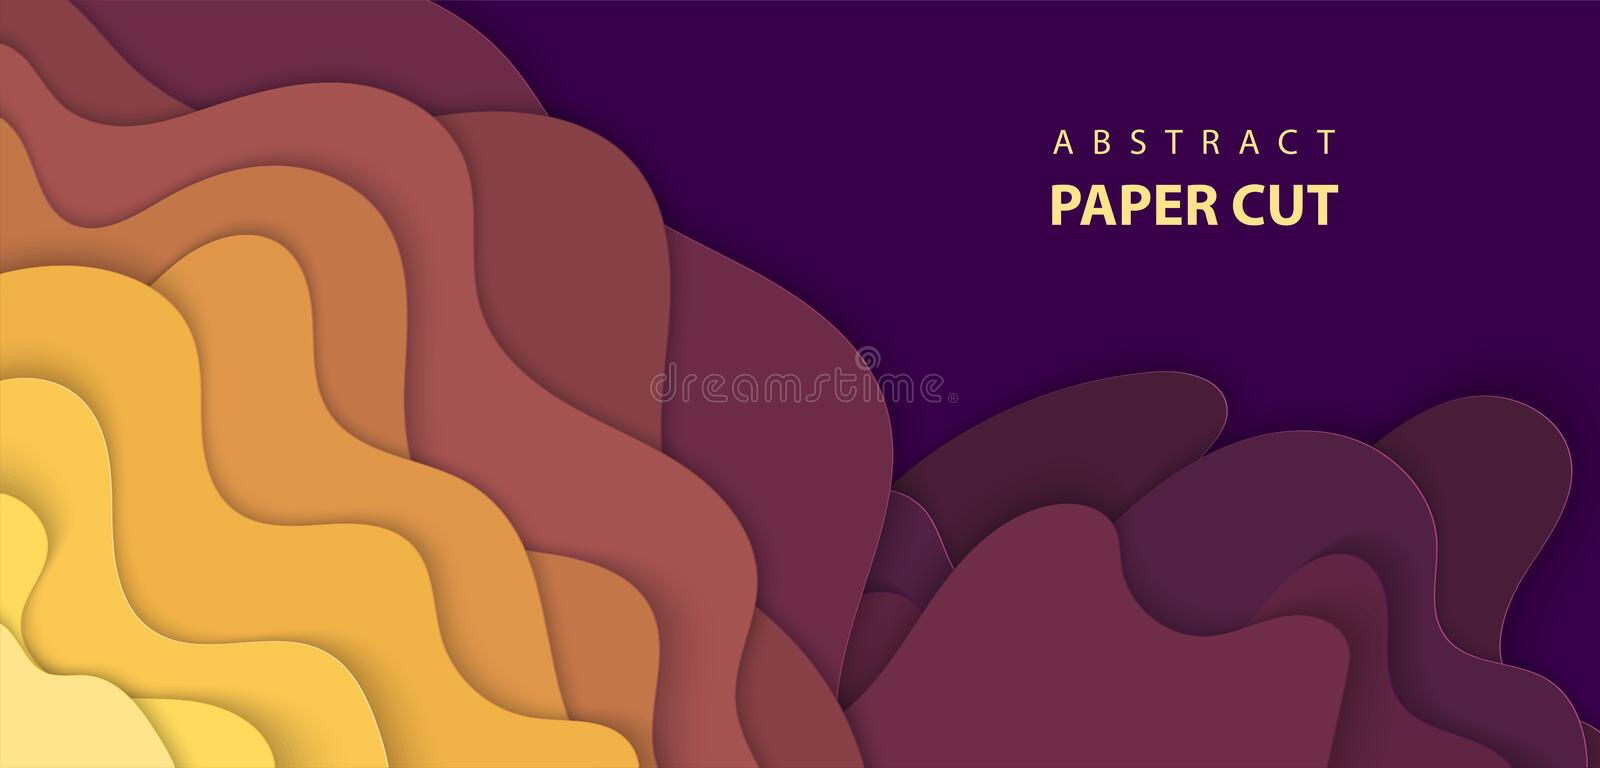 Vector background with multicolor paper cut shapes. 3D abstract royalty free illustration